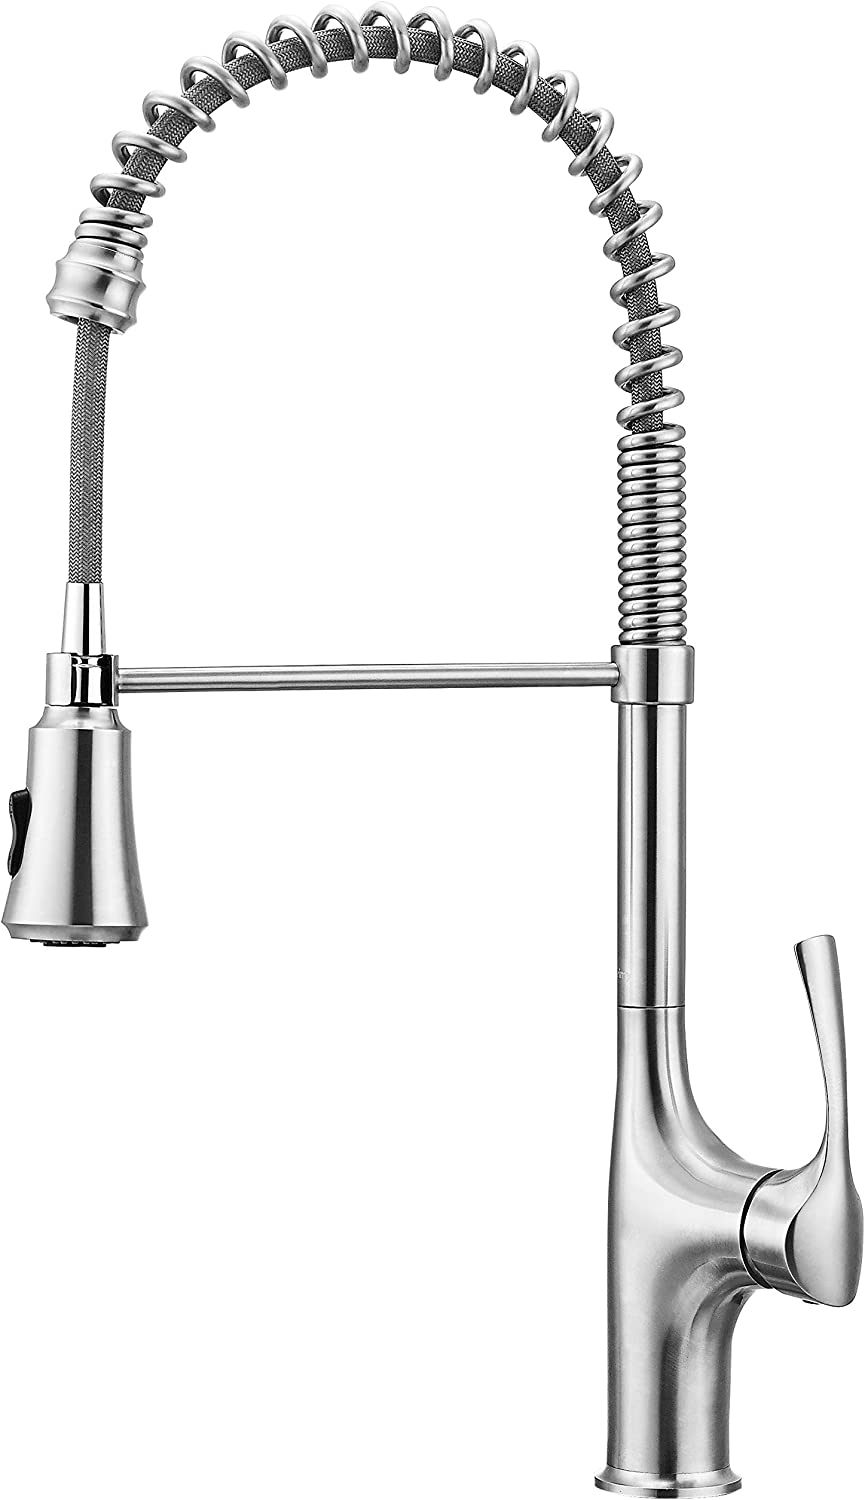 Primy Commercial Kitchen Faucets With Pull Down Sprayer Modern Heavy Duty Lead-Free Single Handle High-Arc Kitchen Sink Faucet With Deck Plate, Solid 304 Stainless Steel